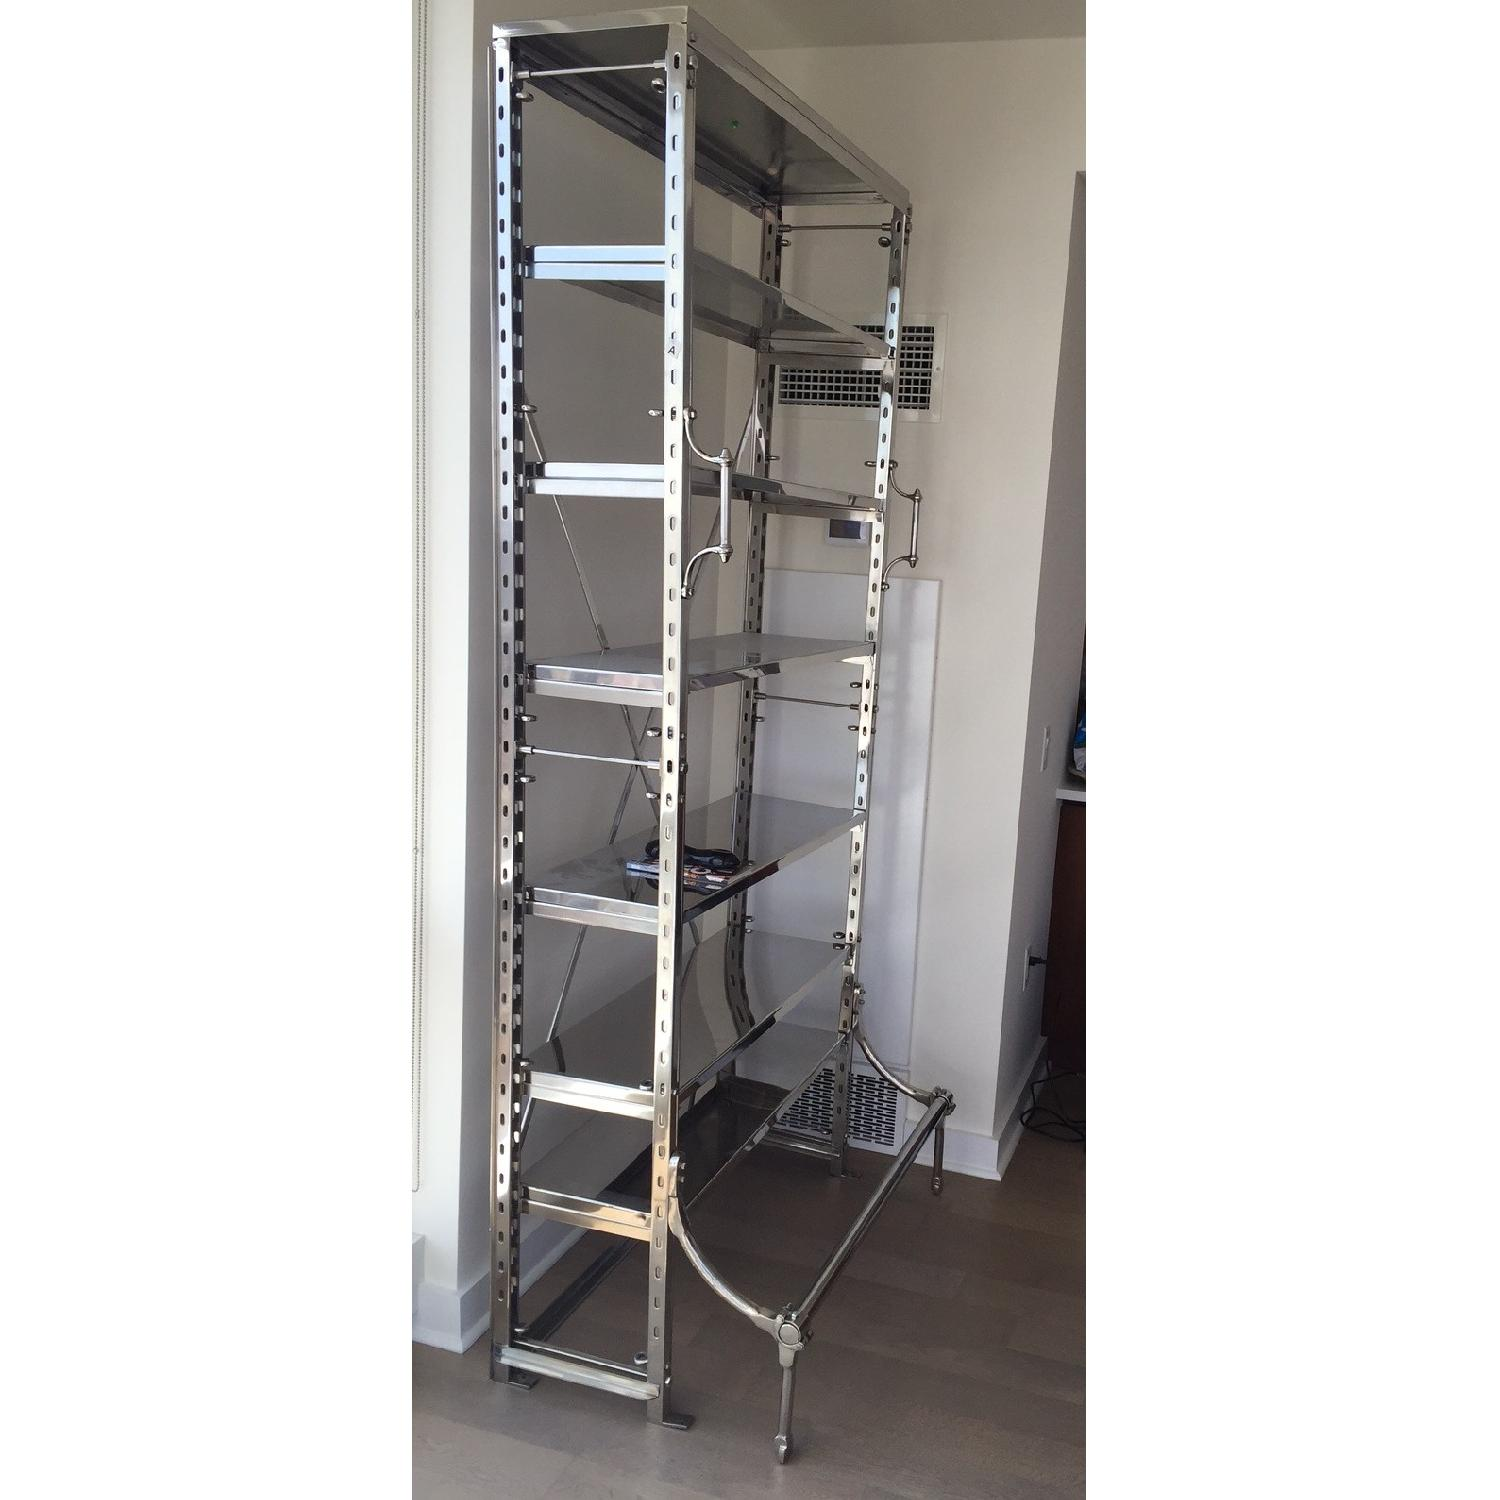 Restoration Hardware French Library Single Shelving in Polished Stainless Steel - image-2